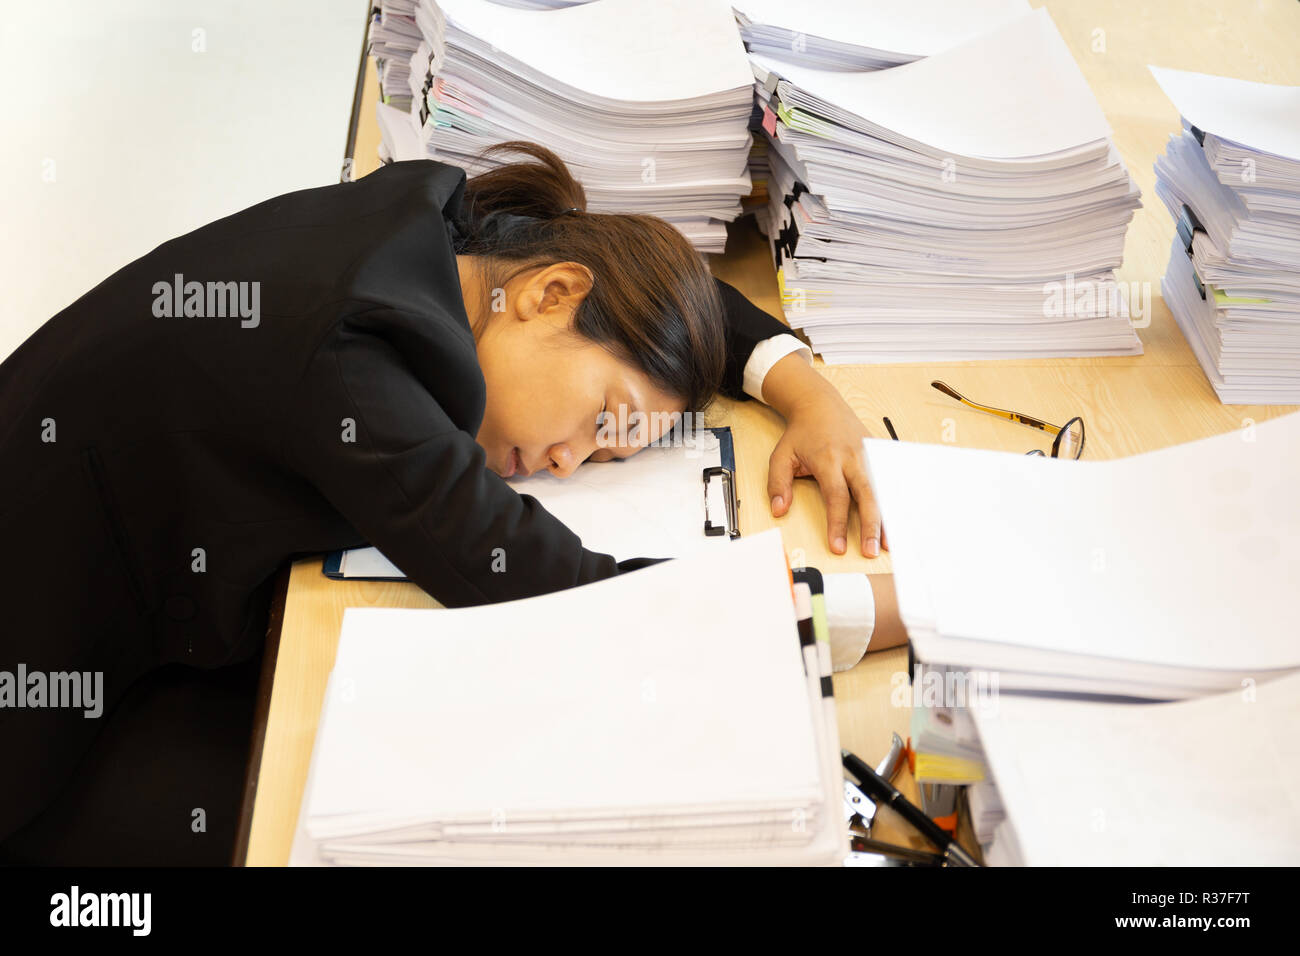 Exhausted woman have lot of work with documents fall asleep on working desk. - Stock Image